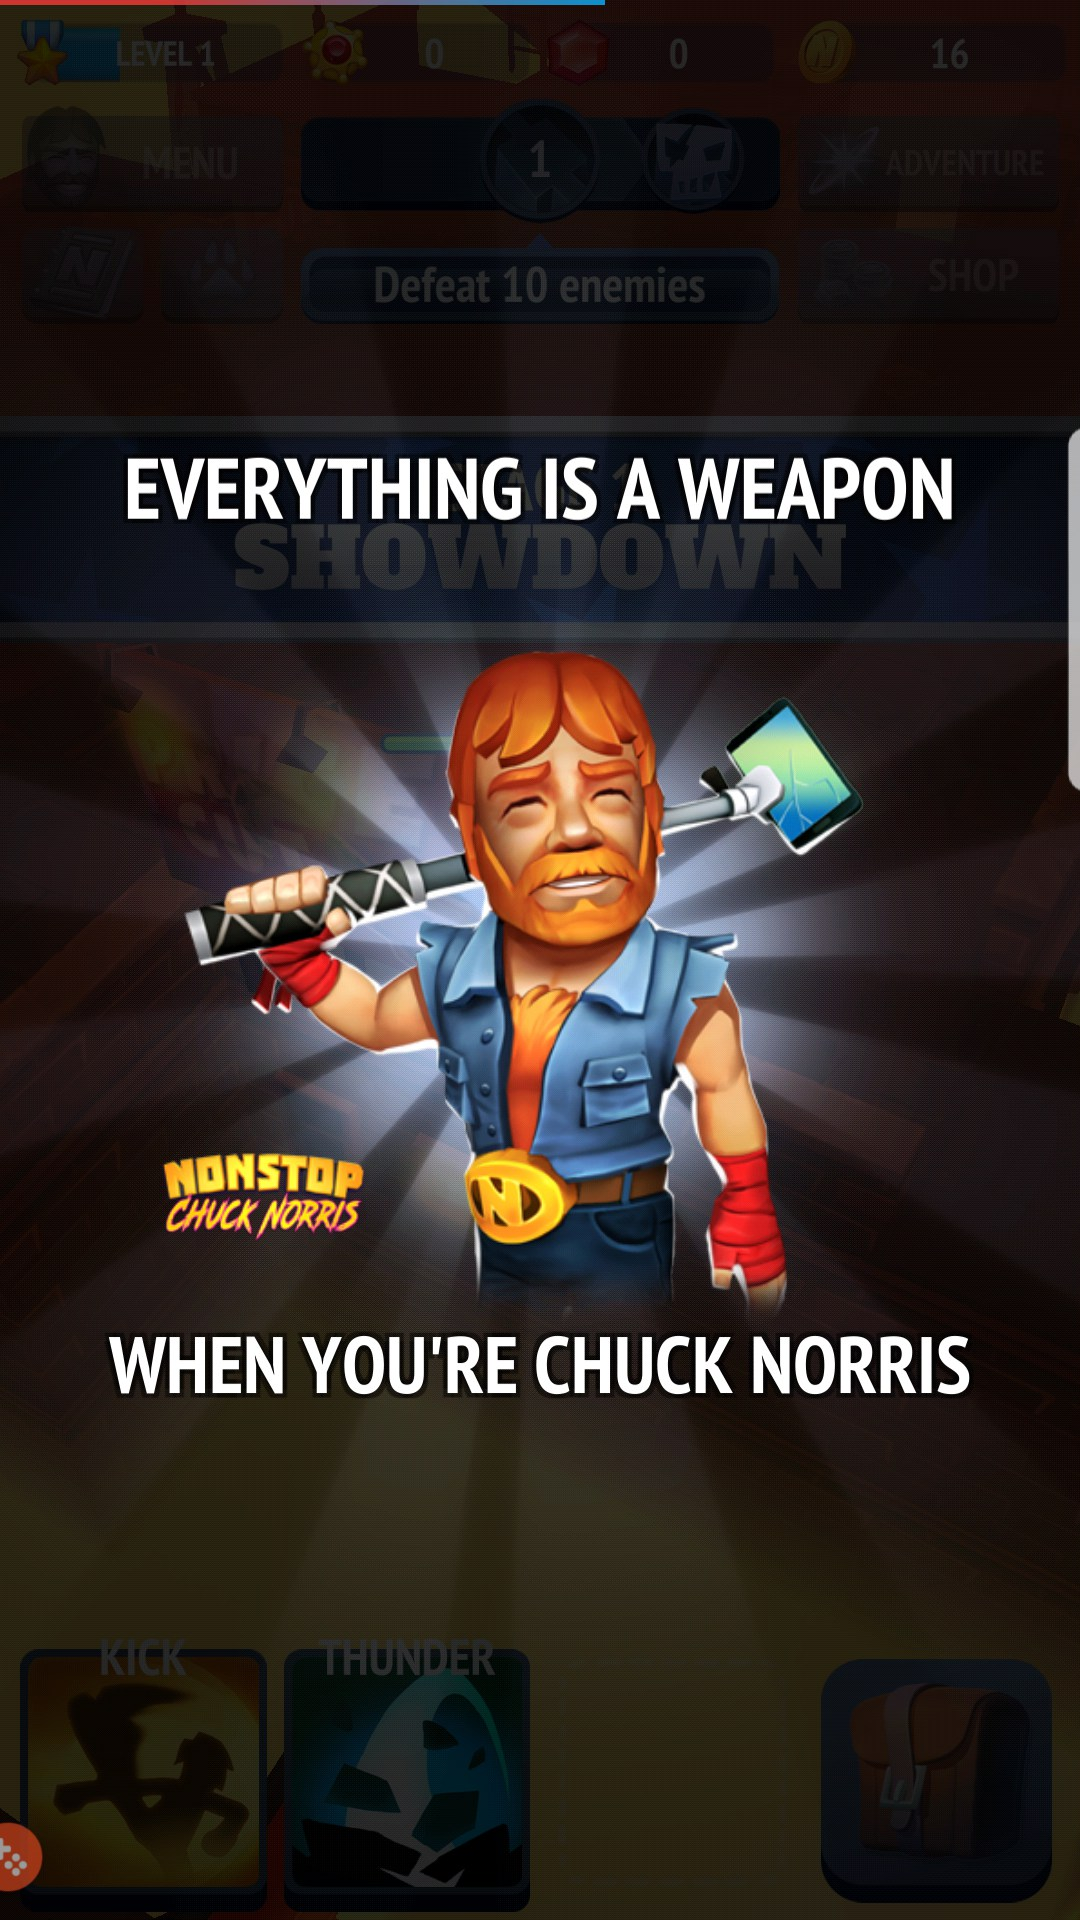 Nonstop Chuck Norris for Huawei Ideos Tablet S7 (Slim) 2018